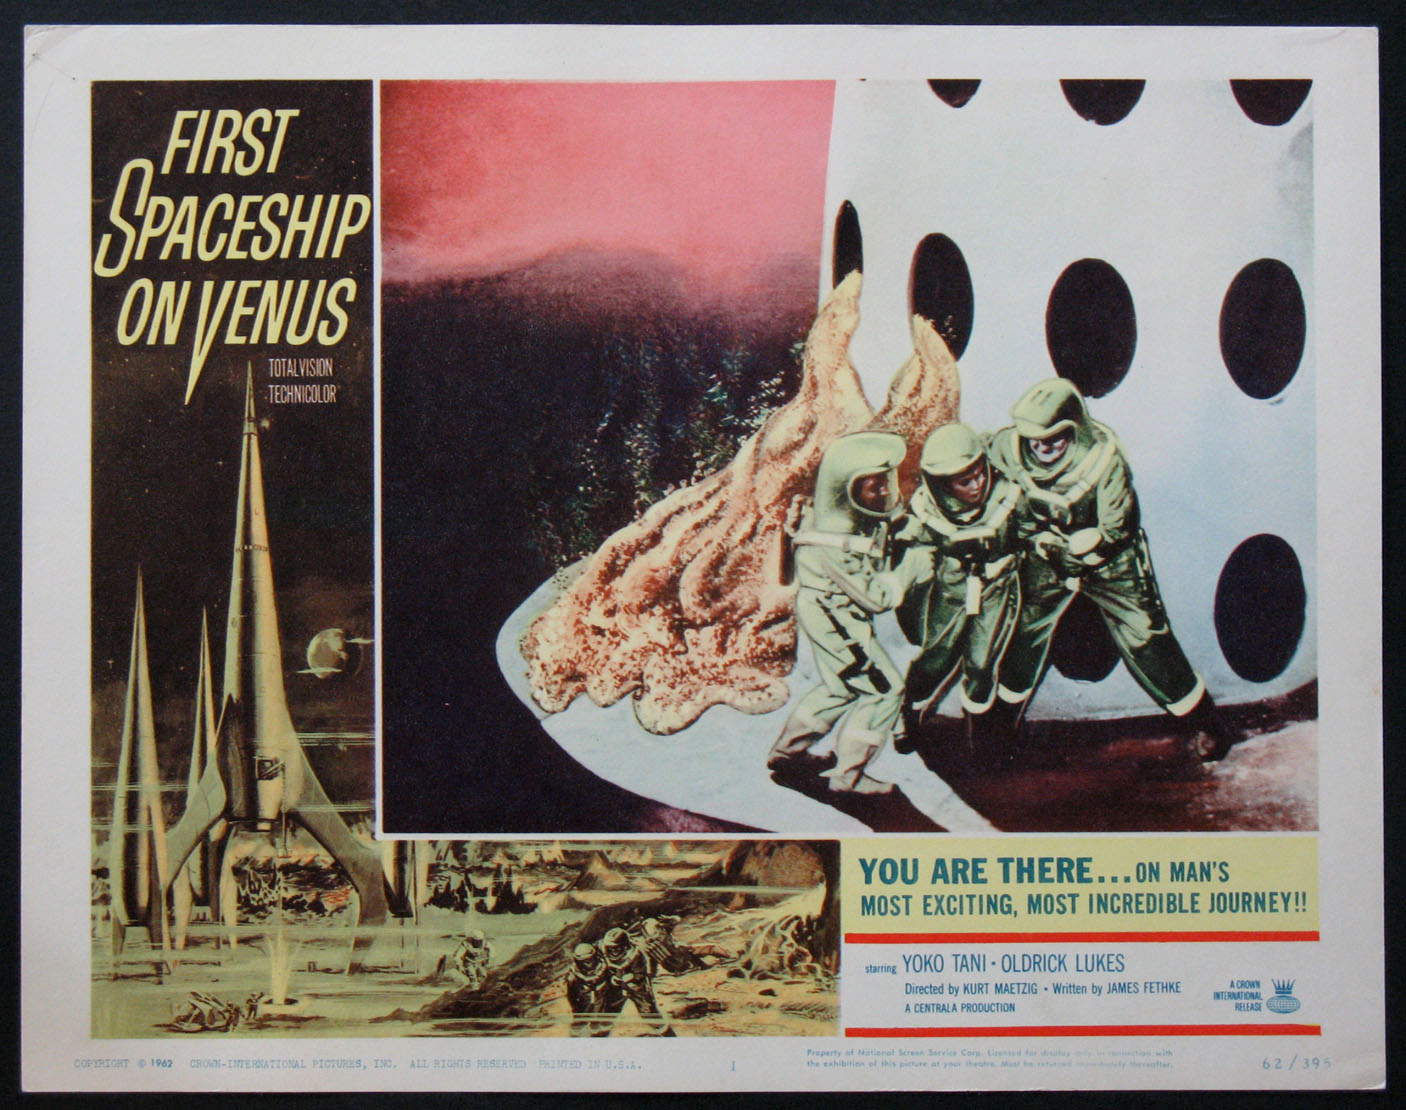 FIRST SPACESHIP ON VENUS @ FilmPosters.com